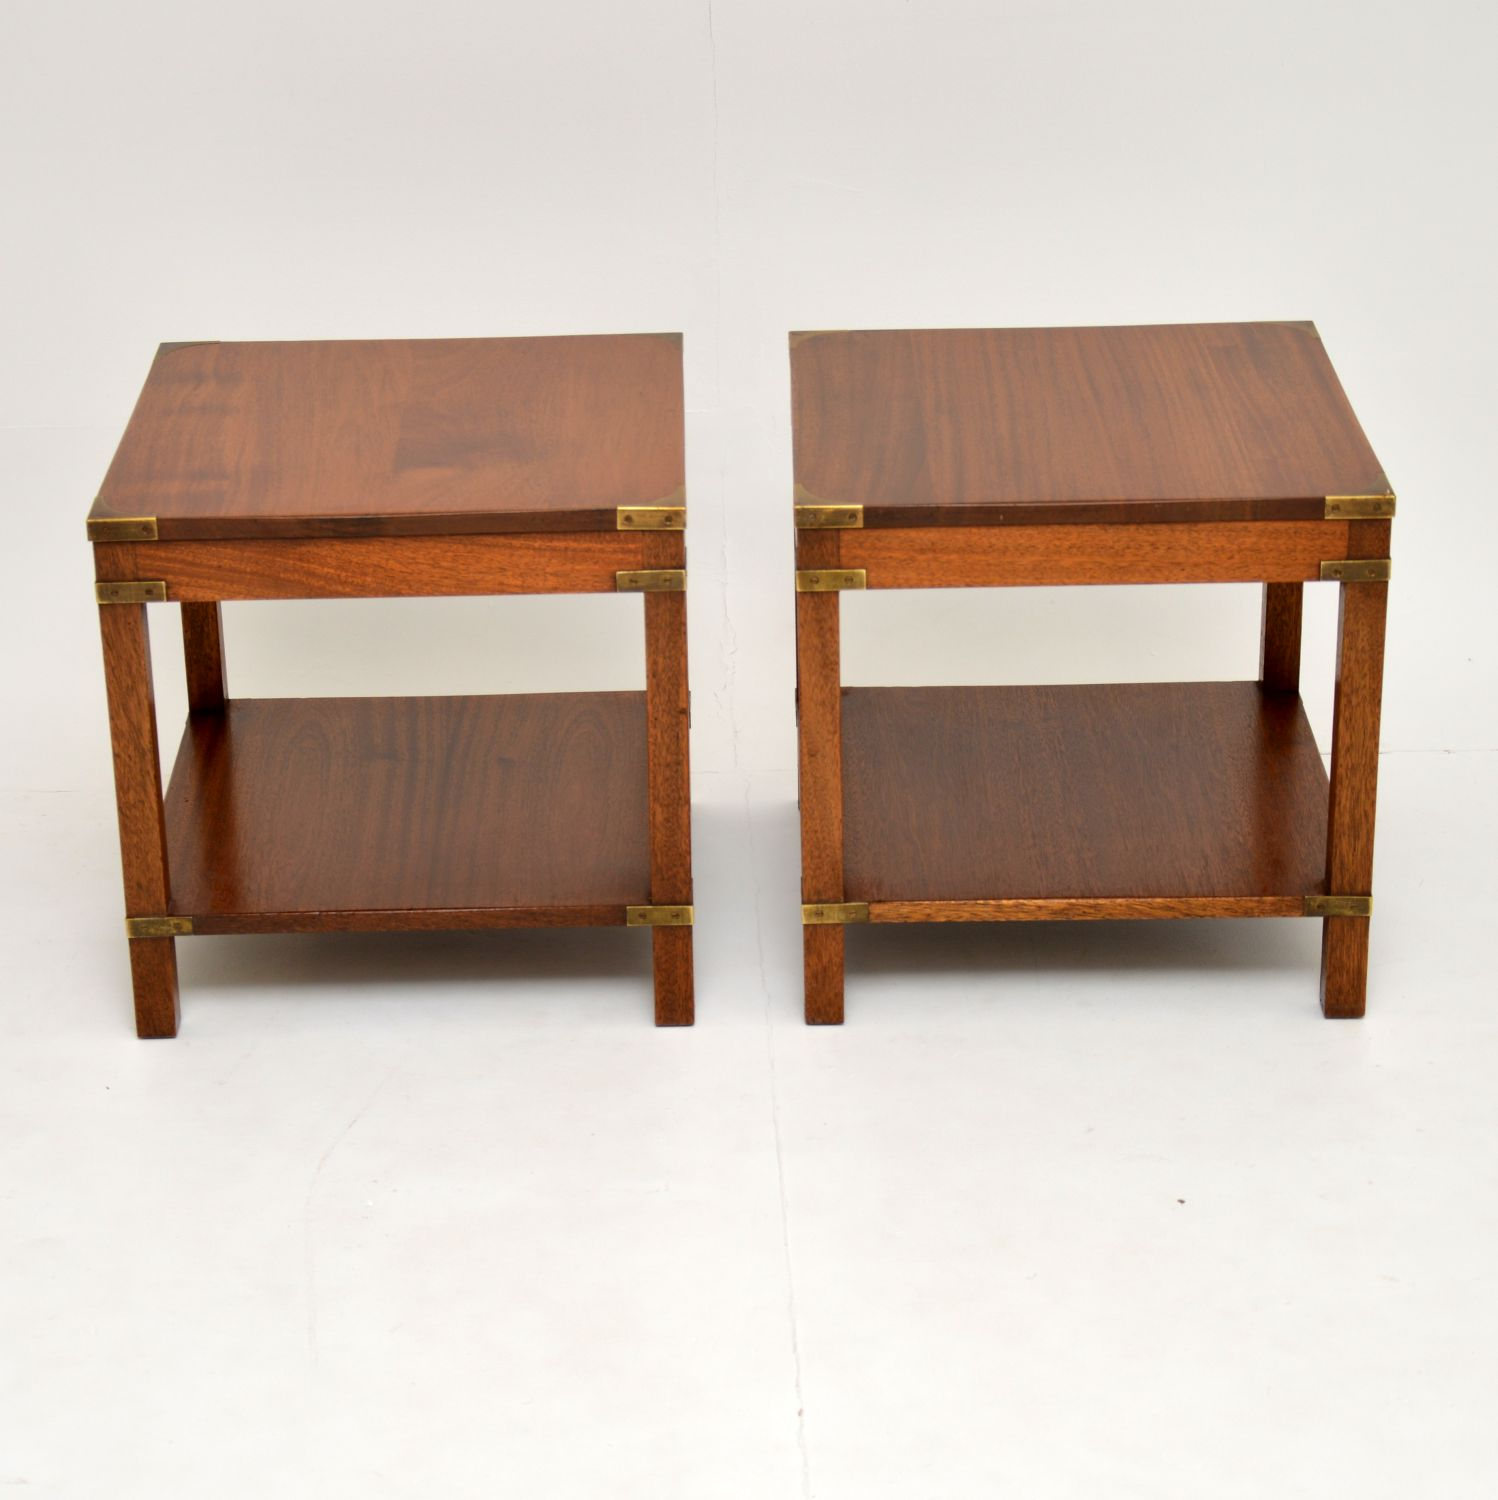 Antique Military Campaign Style Mahogany Coffee Table Side Tables Nest Marylebone Antiques